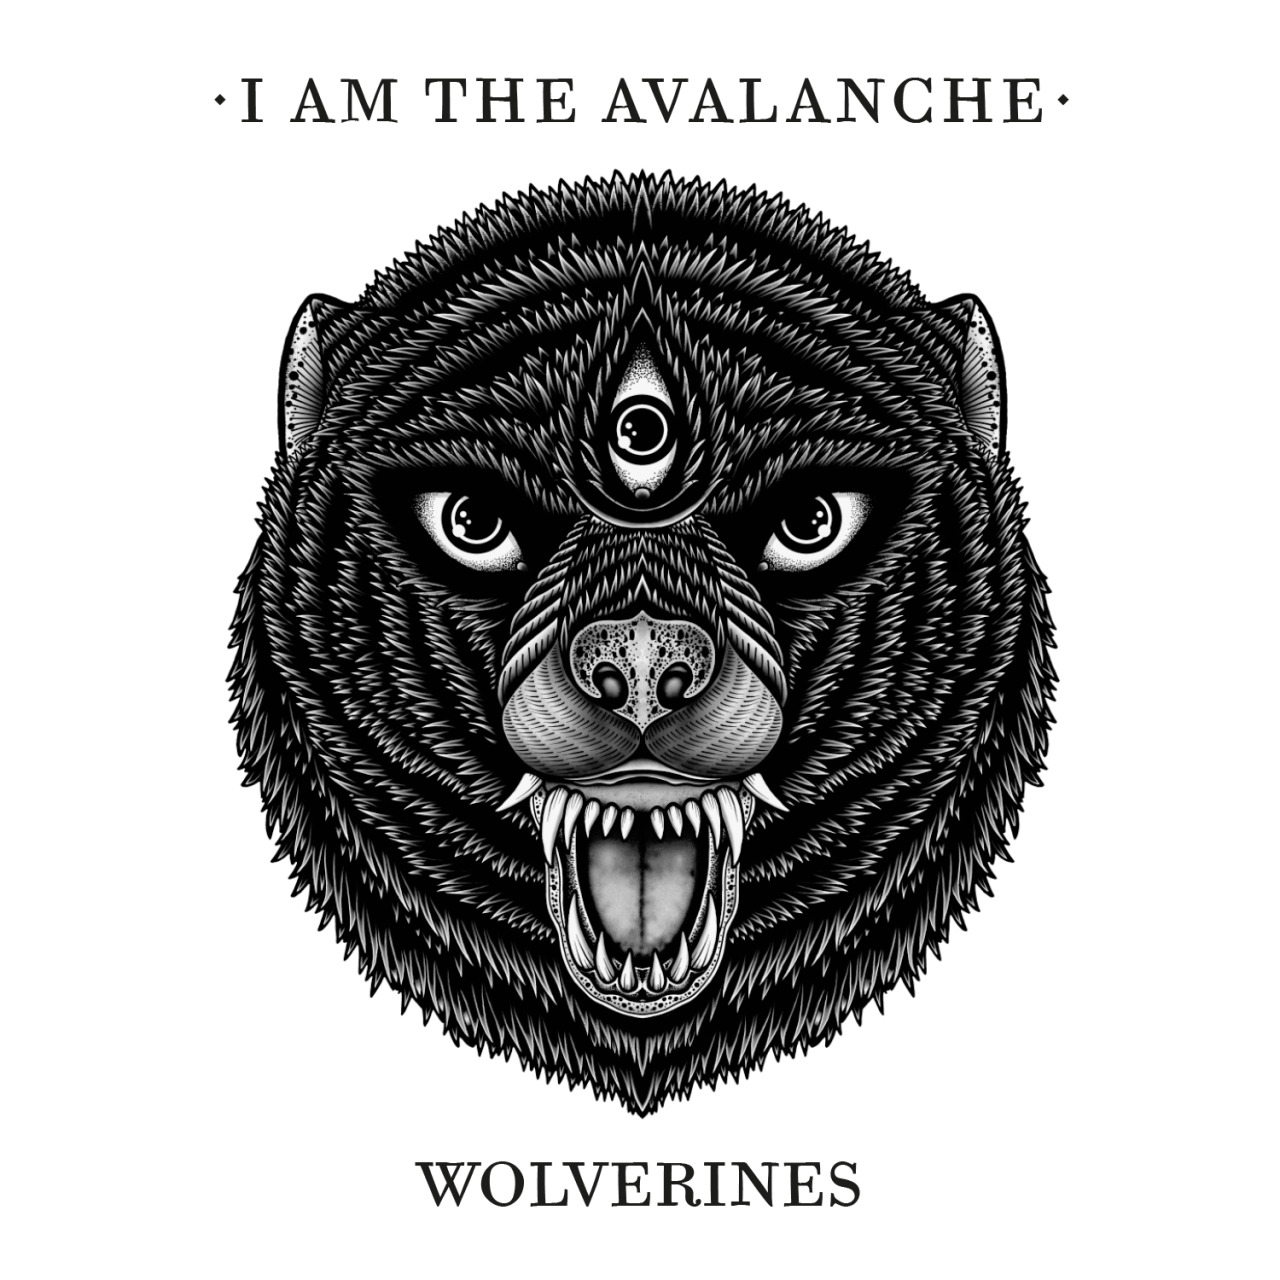 Have you picked up a copy of I Am the Avalanche's 'Wolverines' yet?! Best Buy has copies in store or  online  for only $8.99.